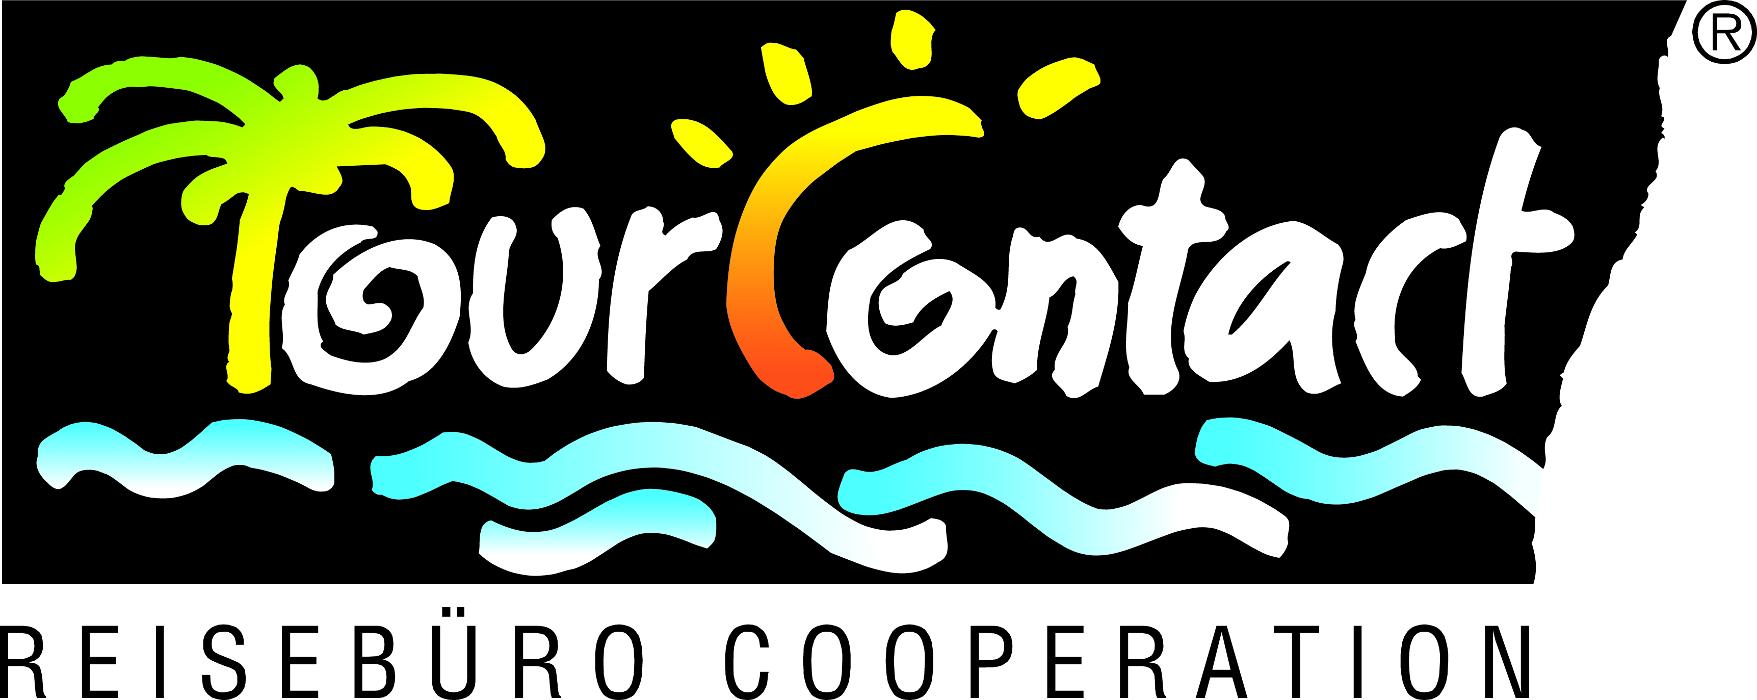 TourContact Reisebüro Cooperation GmbH & Co. KG